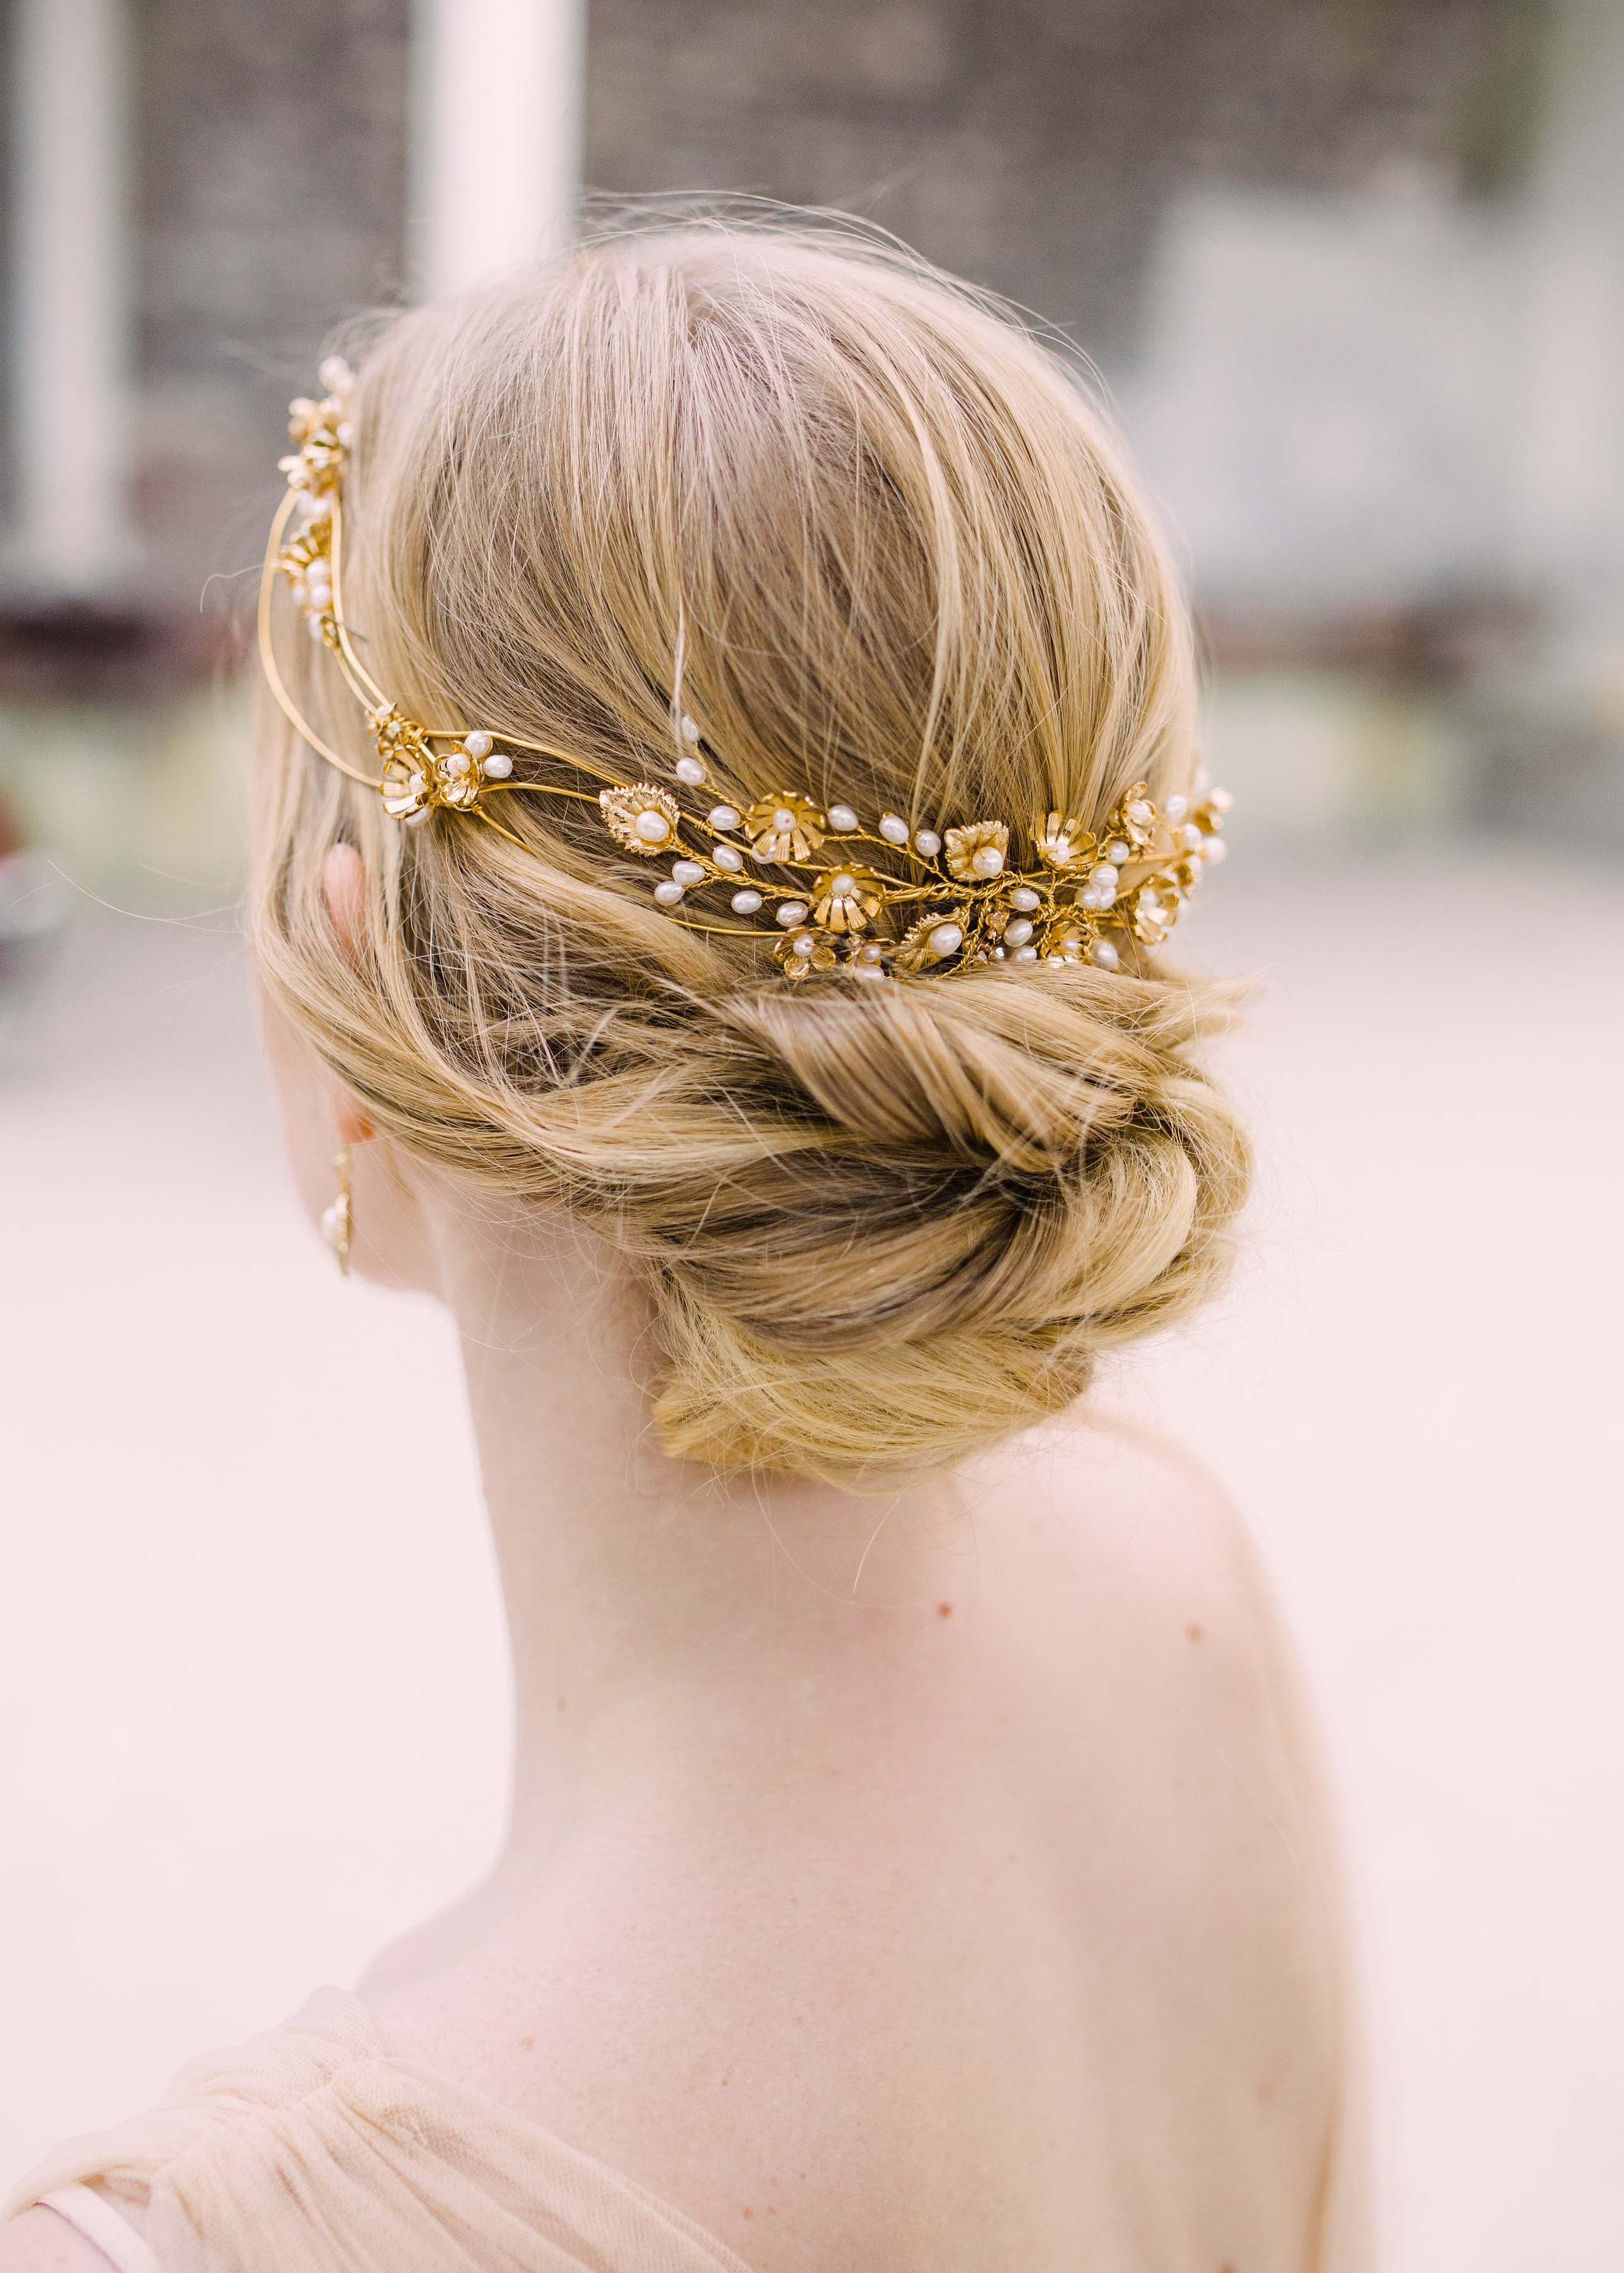 Bridal Hair Accessories: Accessorise Your Wedding Hairstyle – Hair Regarding Favorite Tousled Asymmetrical Updo Wedding Hairstyles (View 8 of 20)